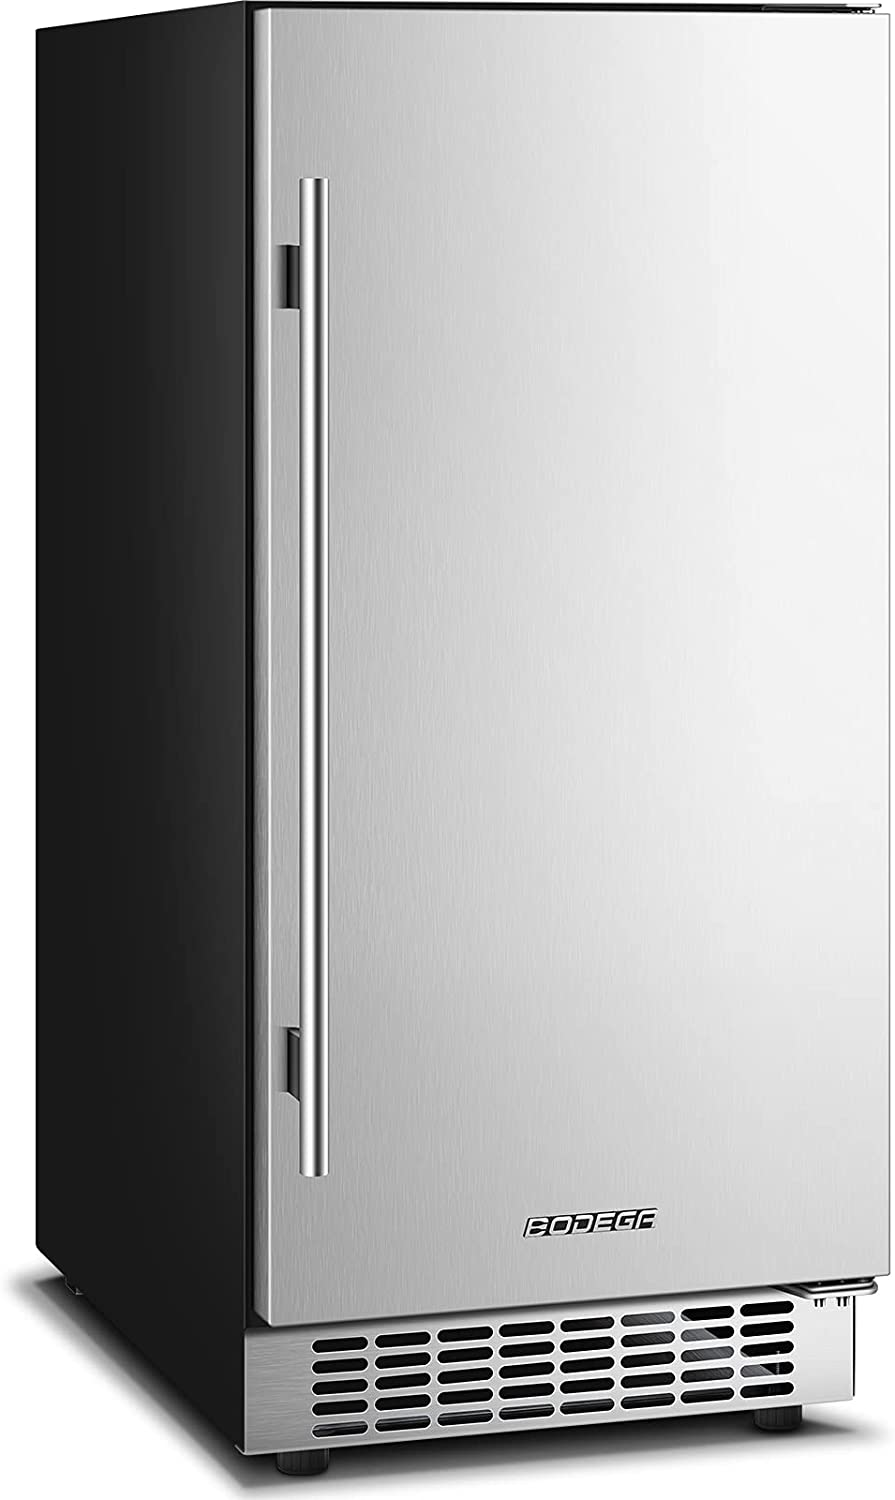 Beverage Cooler 15 Inch, Built-in and Freestanding Beverage Refrigerator 100 Cans, Stainless Steel Under Counter Beverage Fridge with Advanced Cooling System, Adjustable Shelf, Energy Saving, Perfect for Soda, Water, Beer, etc.